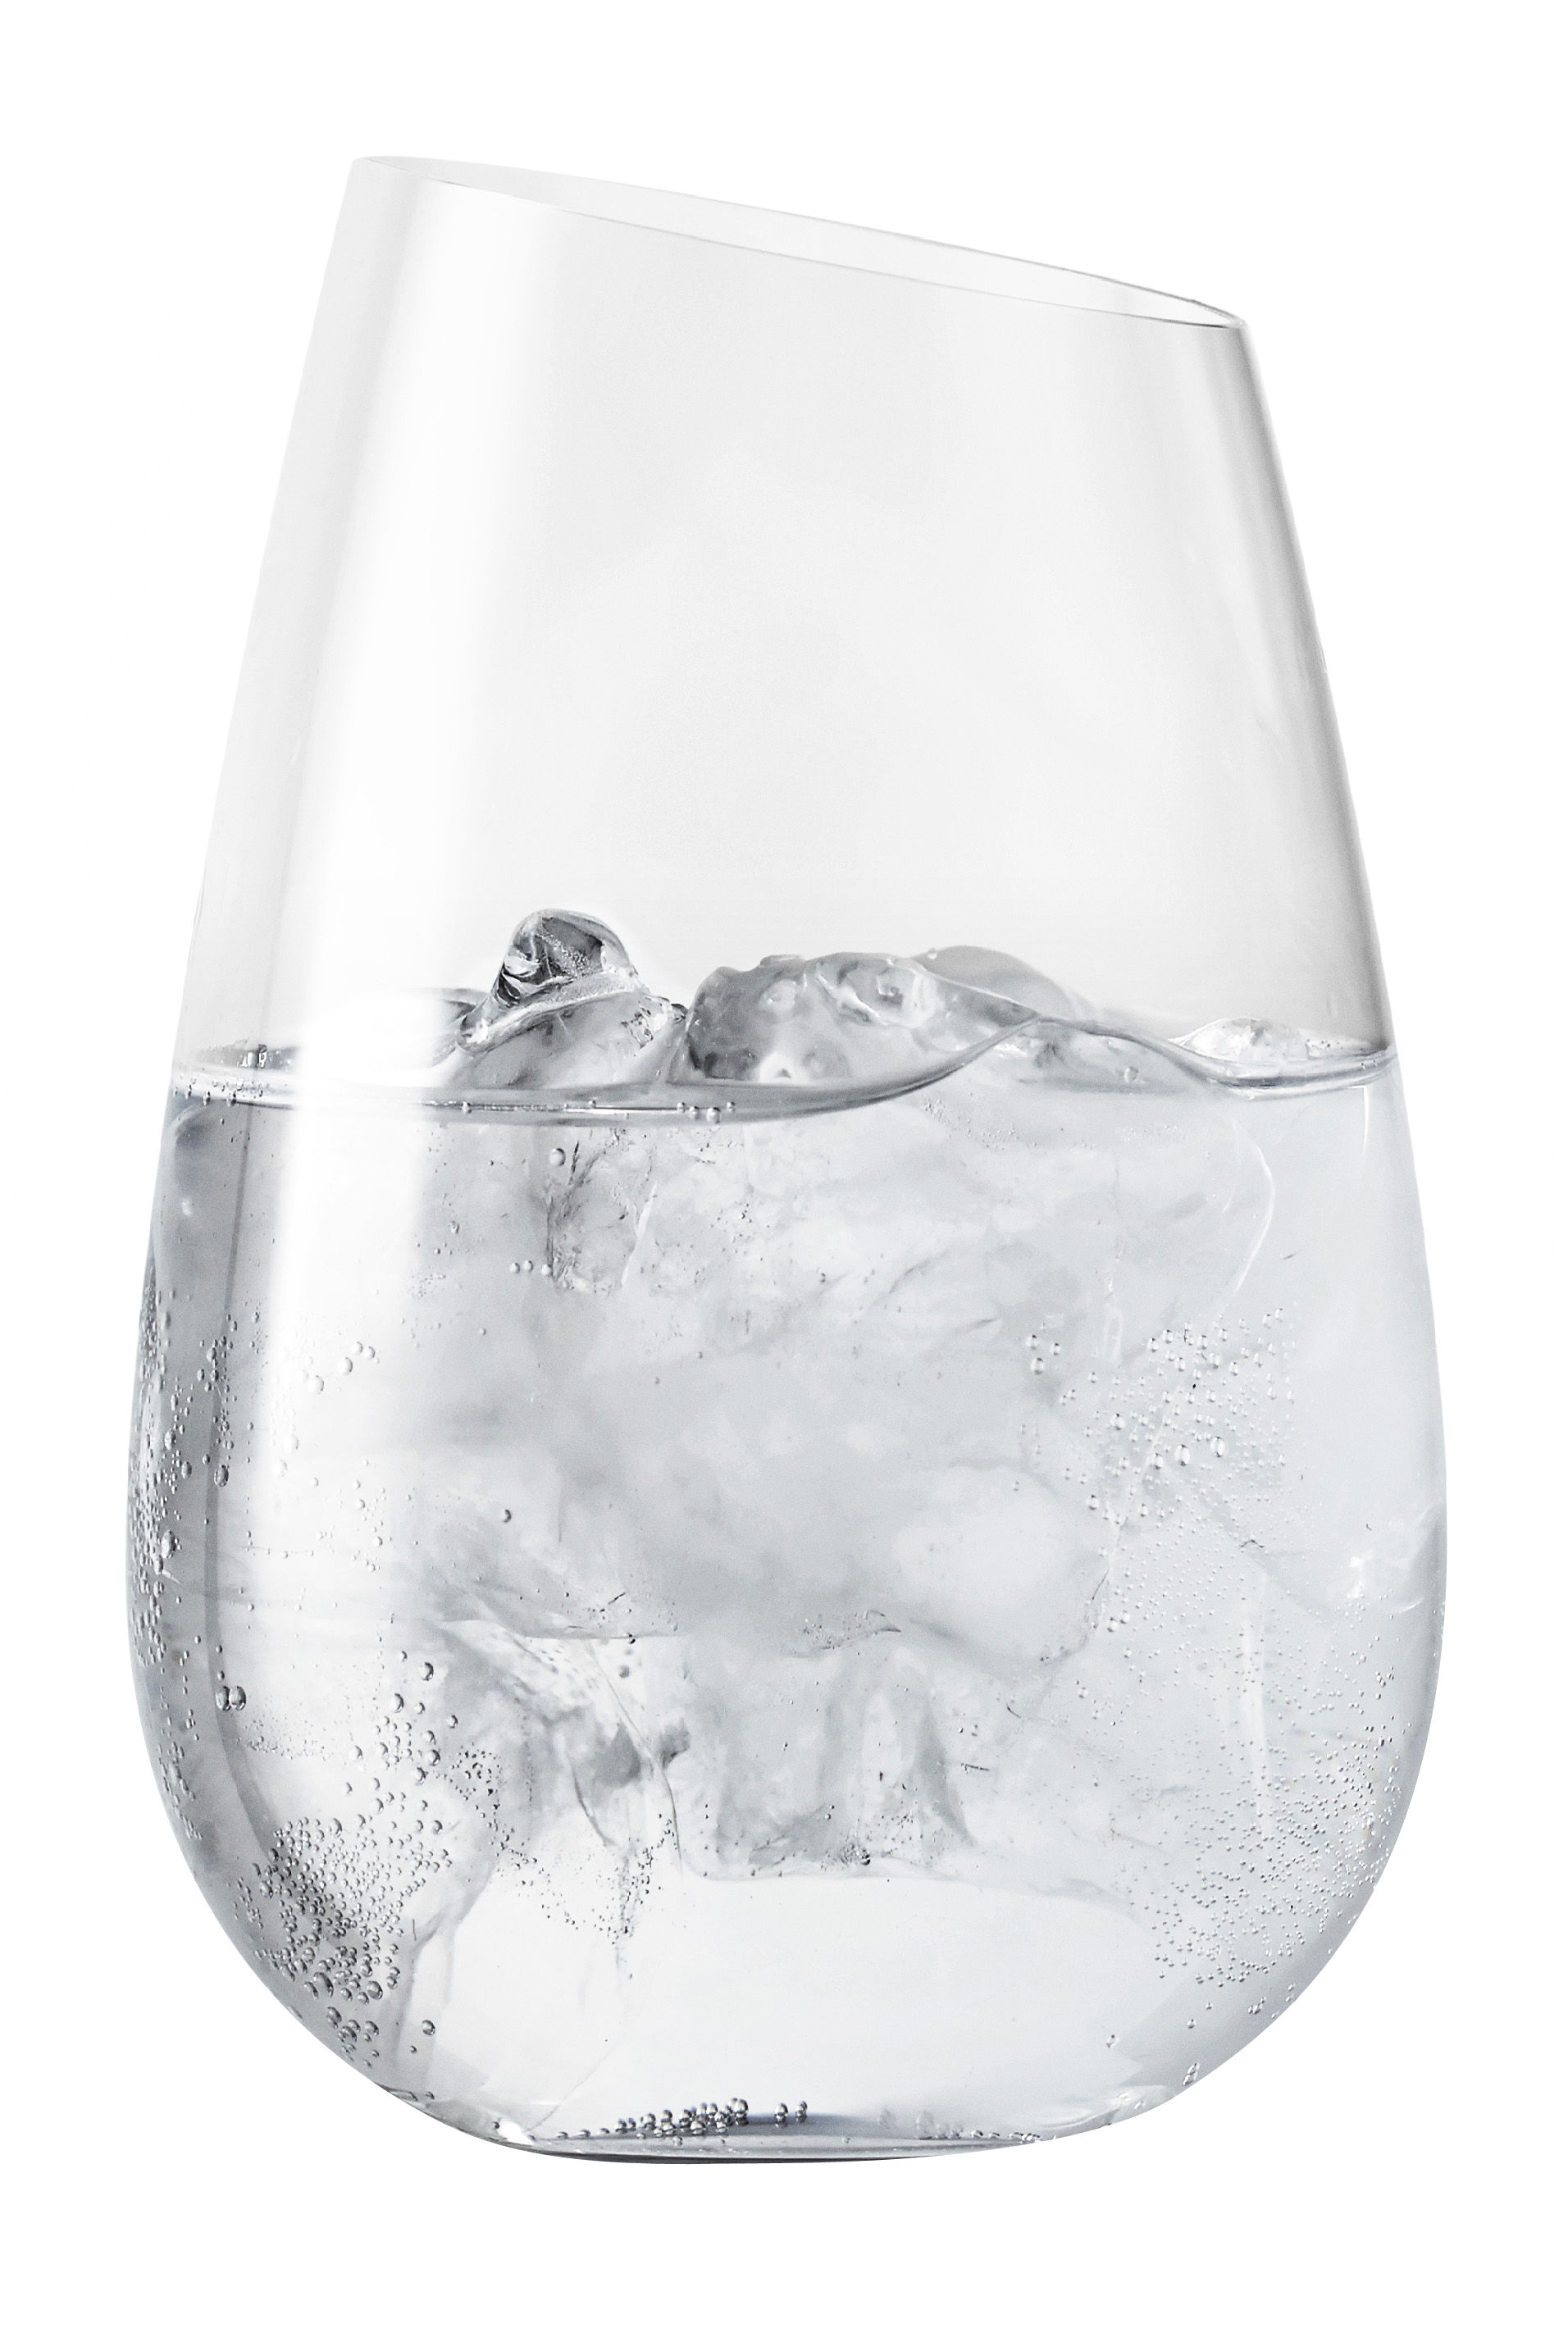 Tableware - Wine Glasses & Glassware - Water glass - 48 cl by Eva Solo - Large / 48 cl - Mouth blown glass